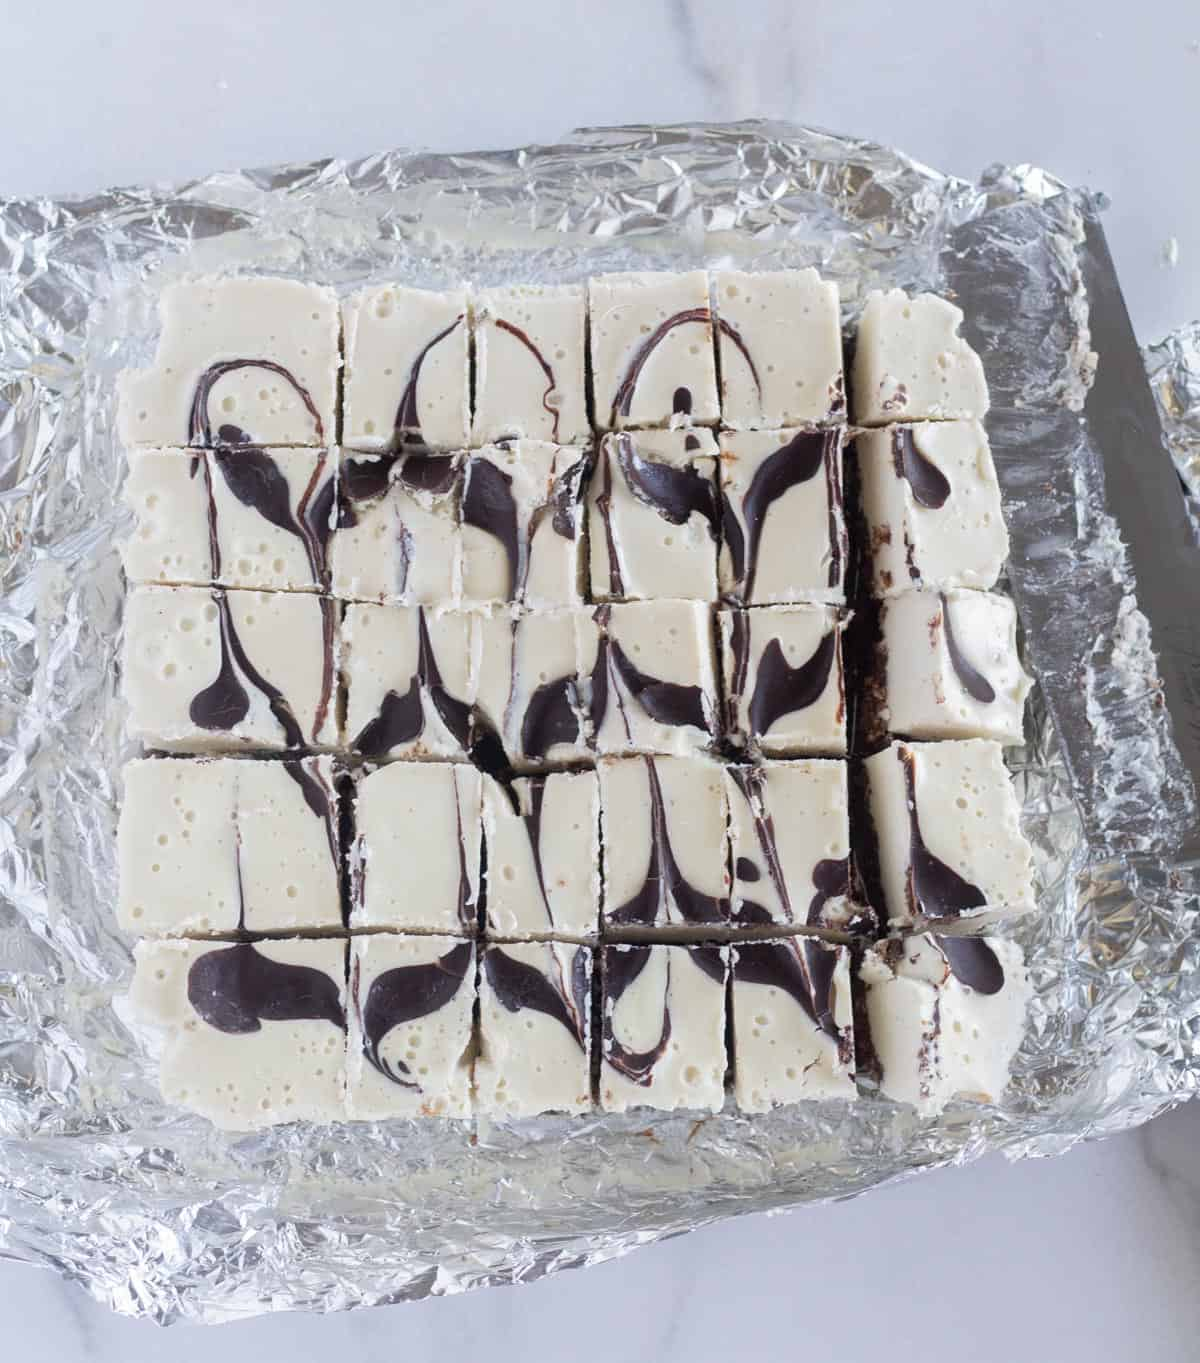 cheesecake cut into bite-sized squares